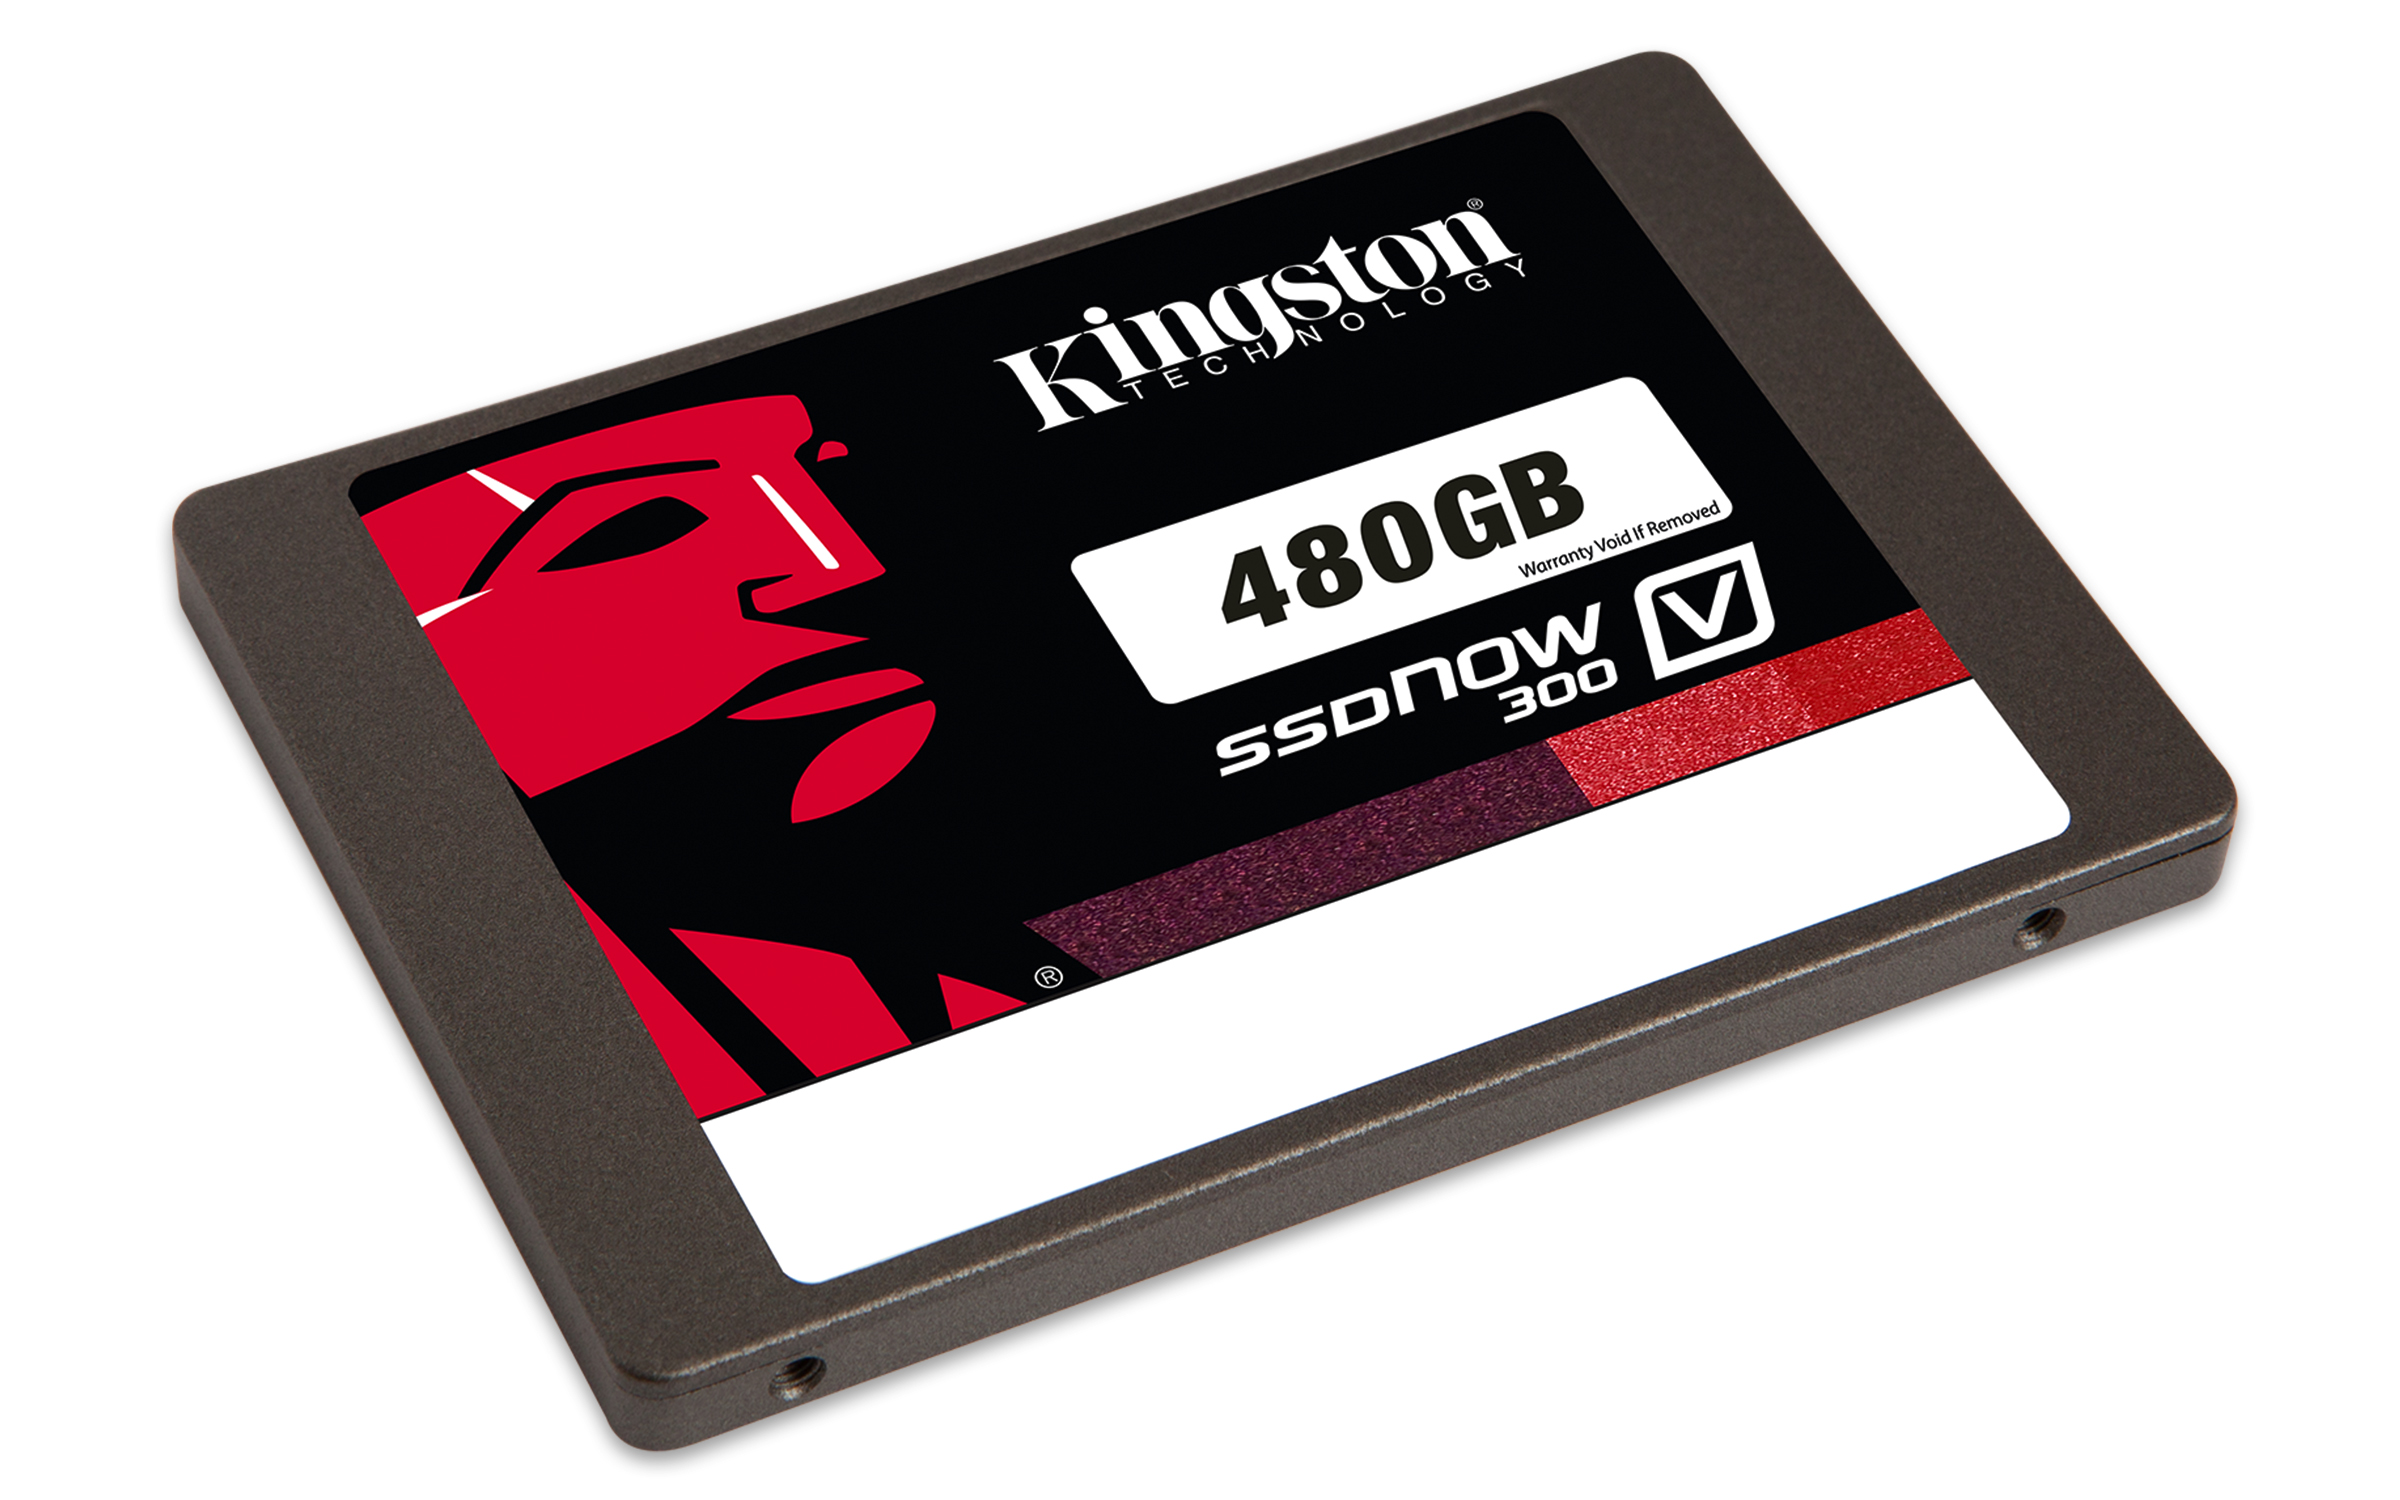 Kingston SVP200S3B 60GB SSD Drivers for Mac